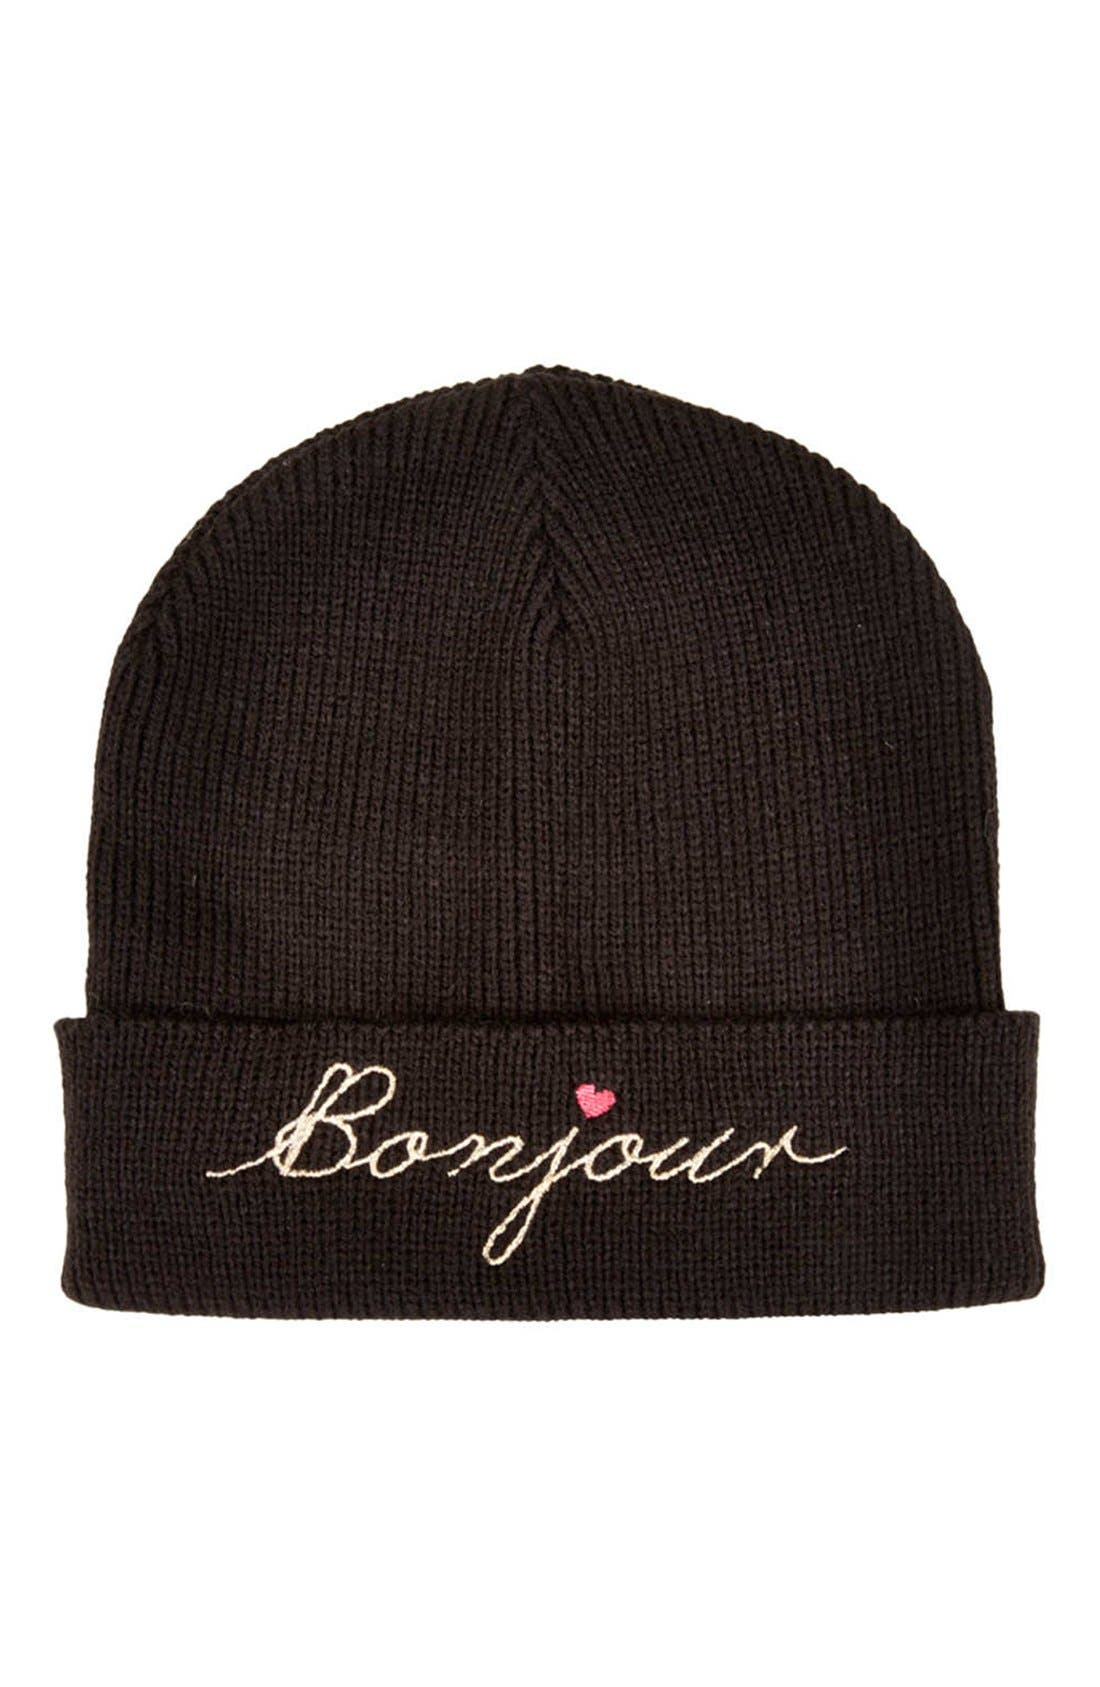 Main Image - Topshop 'Bonjour' Embroidered Beanie